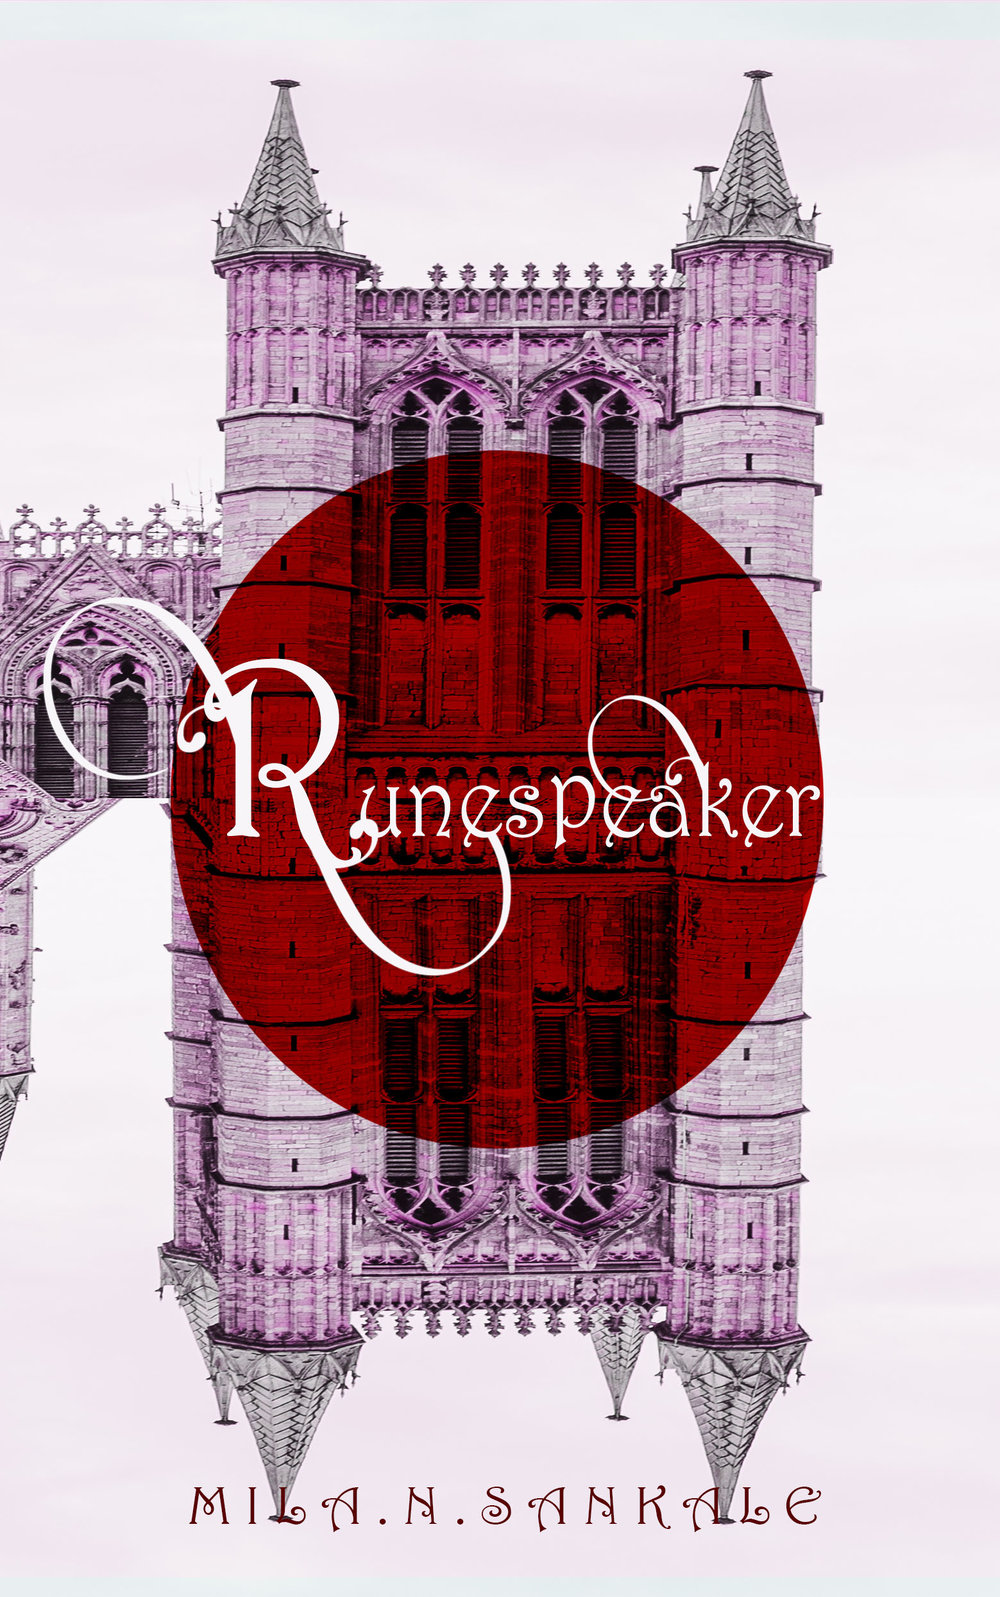 RUNESPEAKERBY MILA N. SANKALE - GENRE: Fantasy NovellaA GIRL IN A TOWER, A CITY UNDER SIEGE, A MONSTER BENEATH IT ALLBorn in the grasslands of the Tsavanah, Ysaan Alluriah has known both joy and sorrow. When her world turns on itAs head, Ysaan finds herself in Zxe-Kotyare, far from everything and everyone she has ever known.